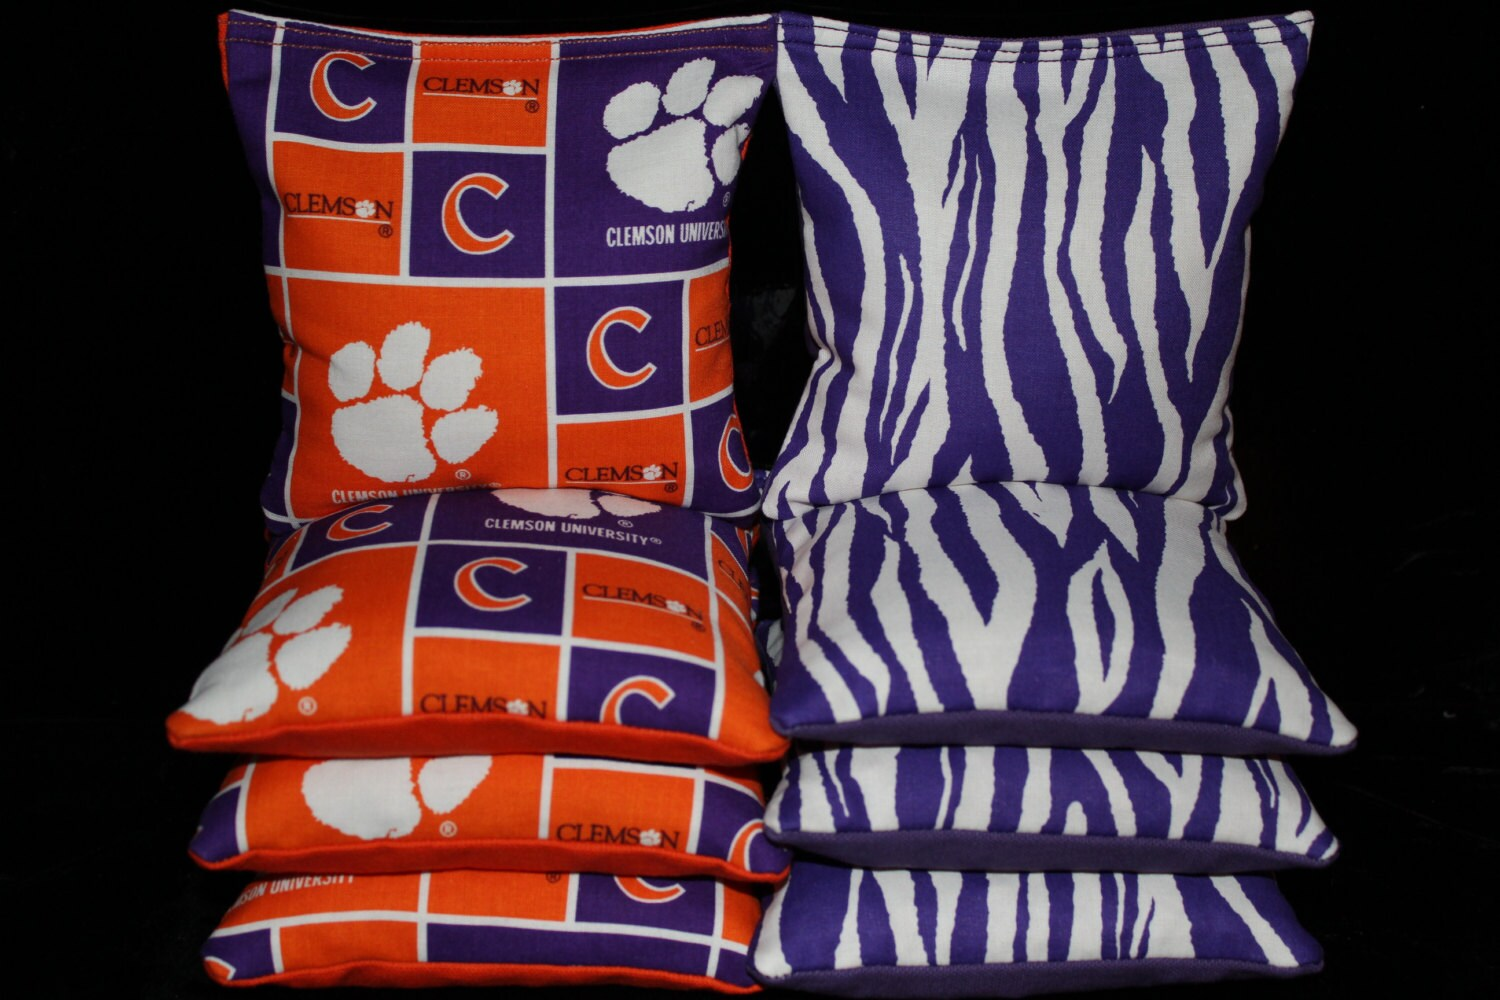 CLEMSON TIGERS Cornhole Bags 8 ACA Regulation Corn Hole Bean